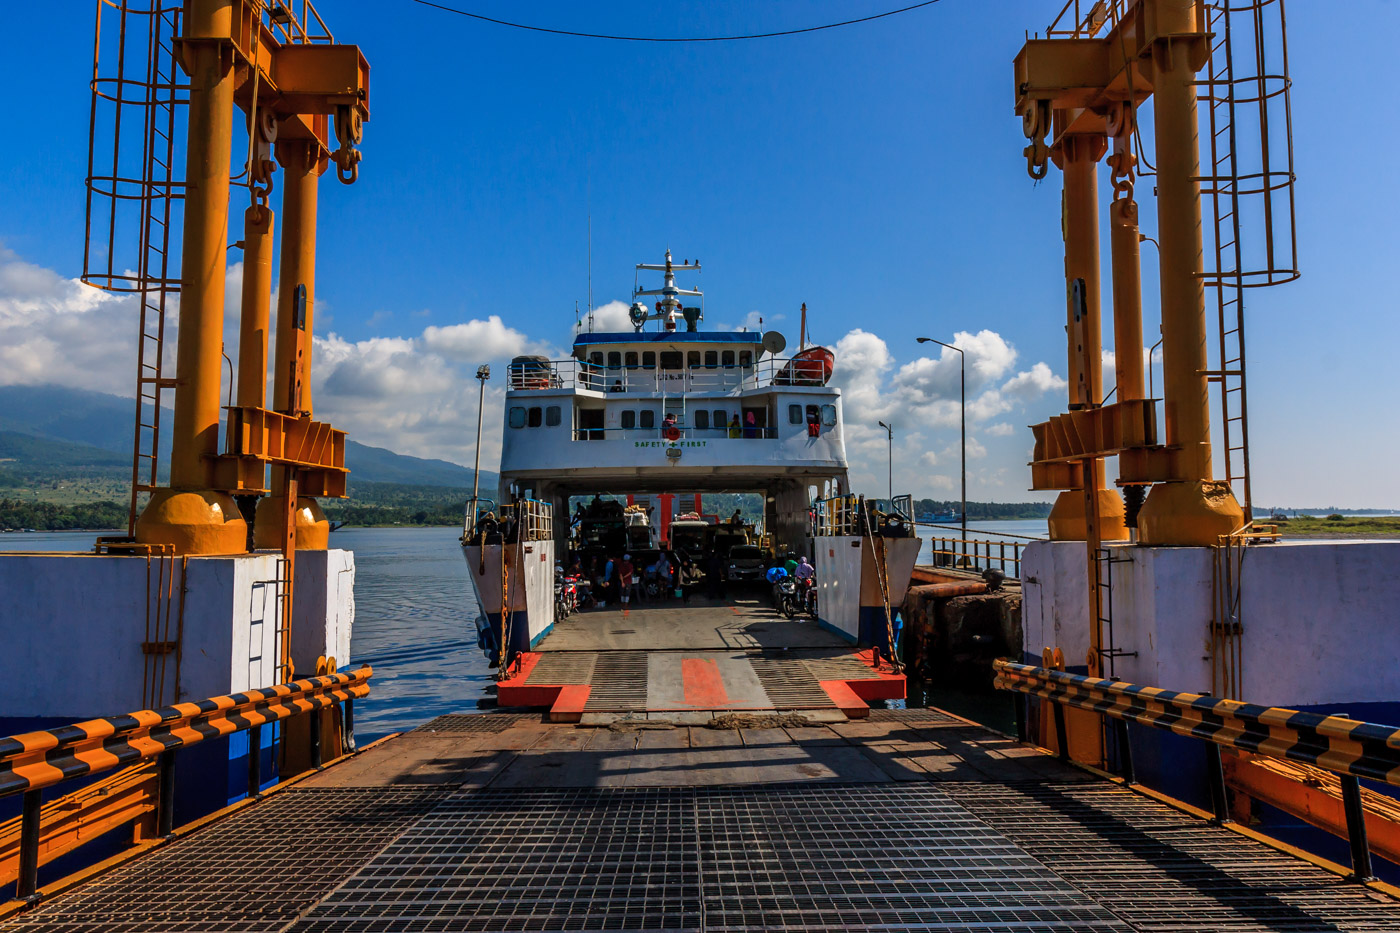 The ferry to Sumbawa. Just drive on.